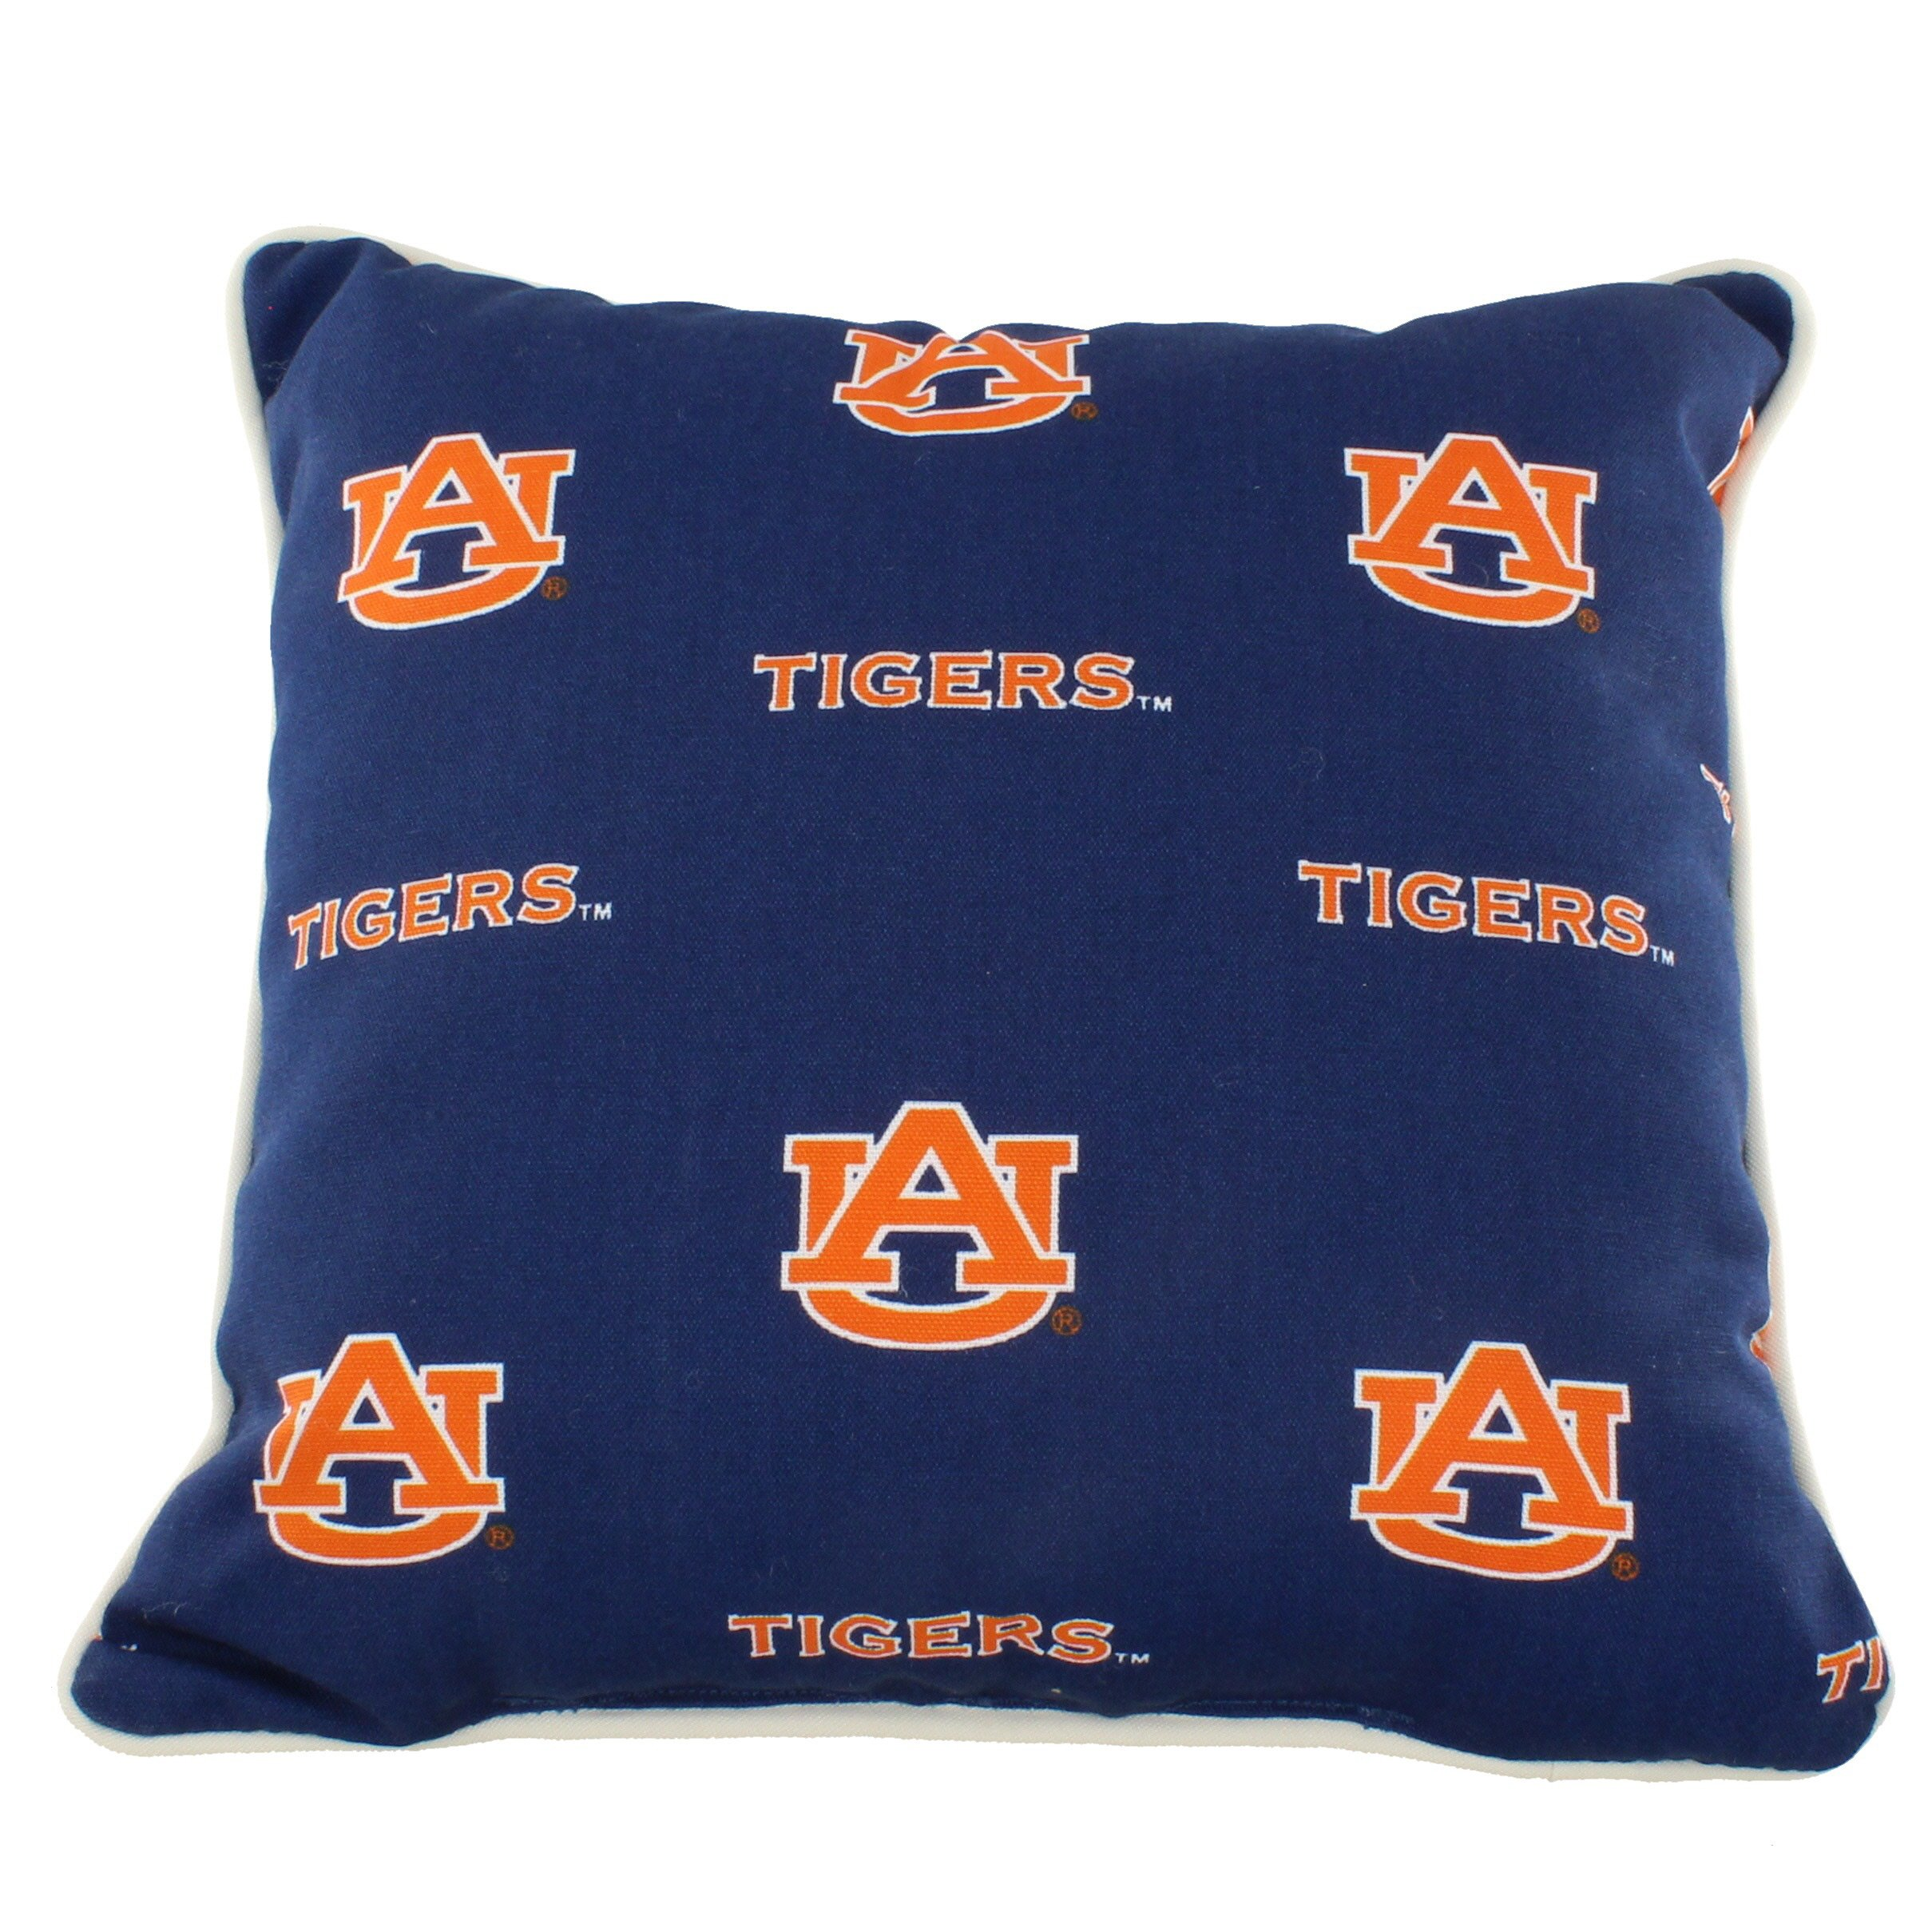 College Covers AUBODP Auburn Tigers Outdoor Decorative Pillow, 16'' x 16'', Blue